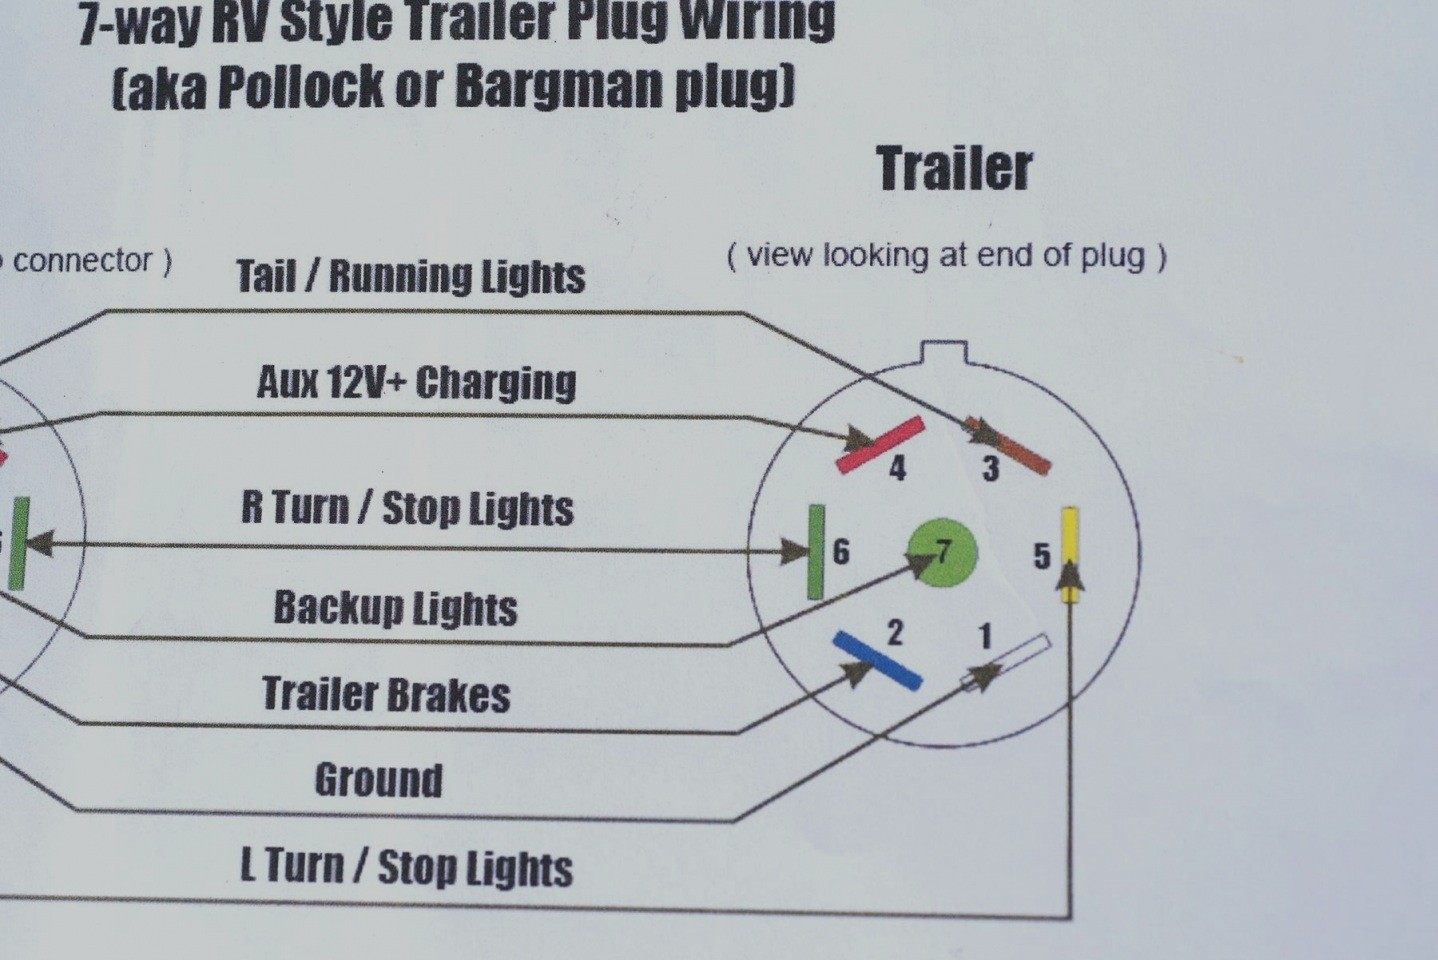 Trailer Wiring Diagram For South Africa | Wiring Library - Wiring Diagram Trailer South Africa